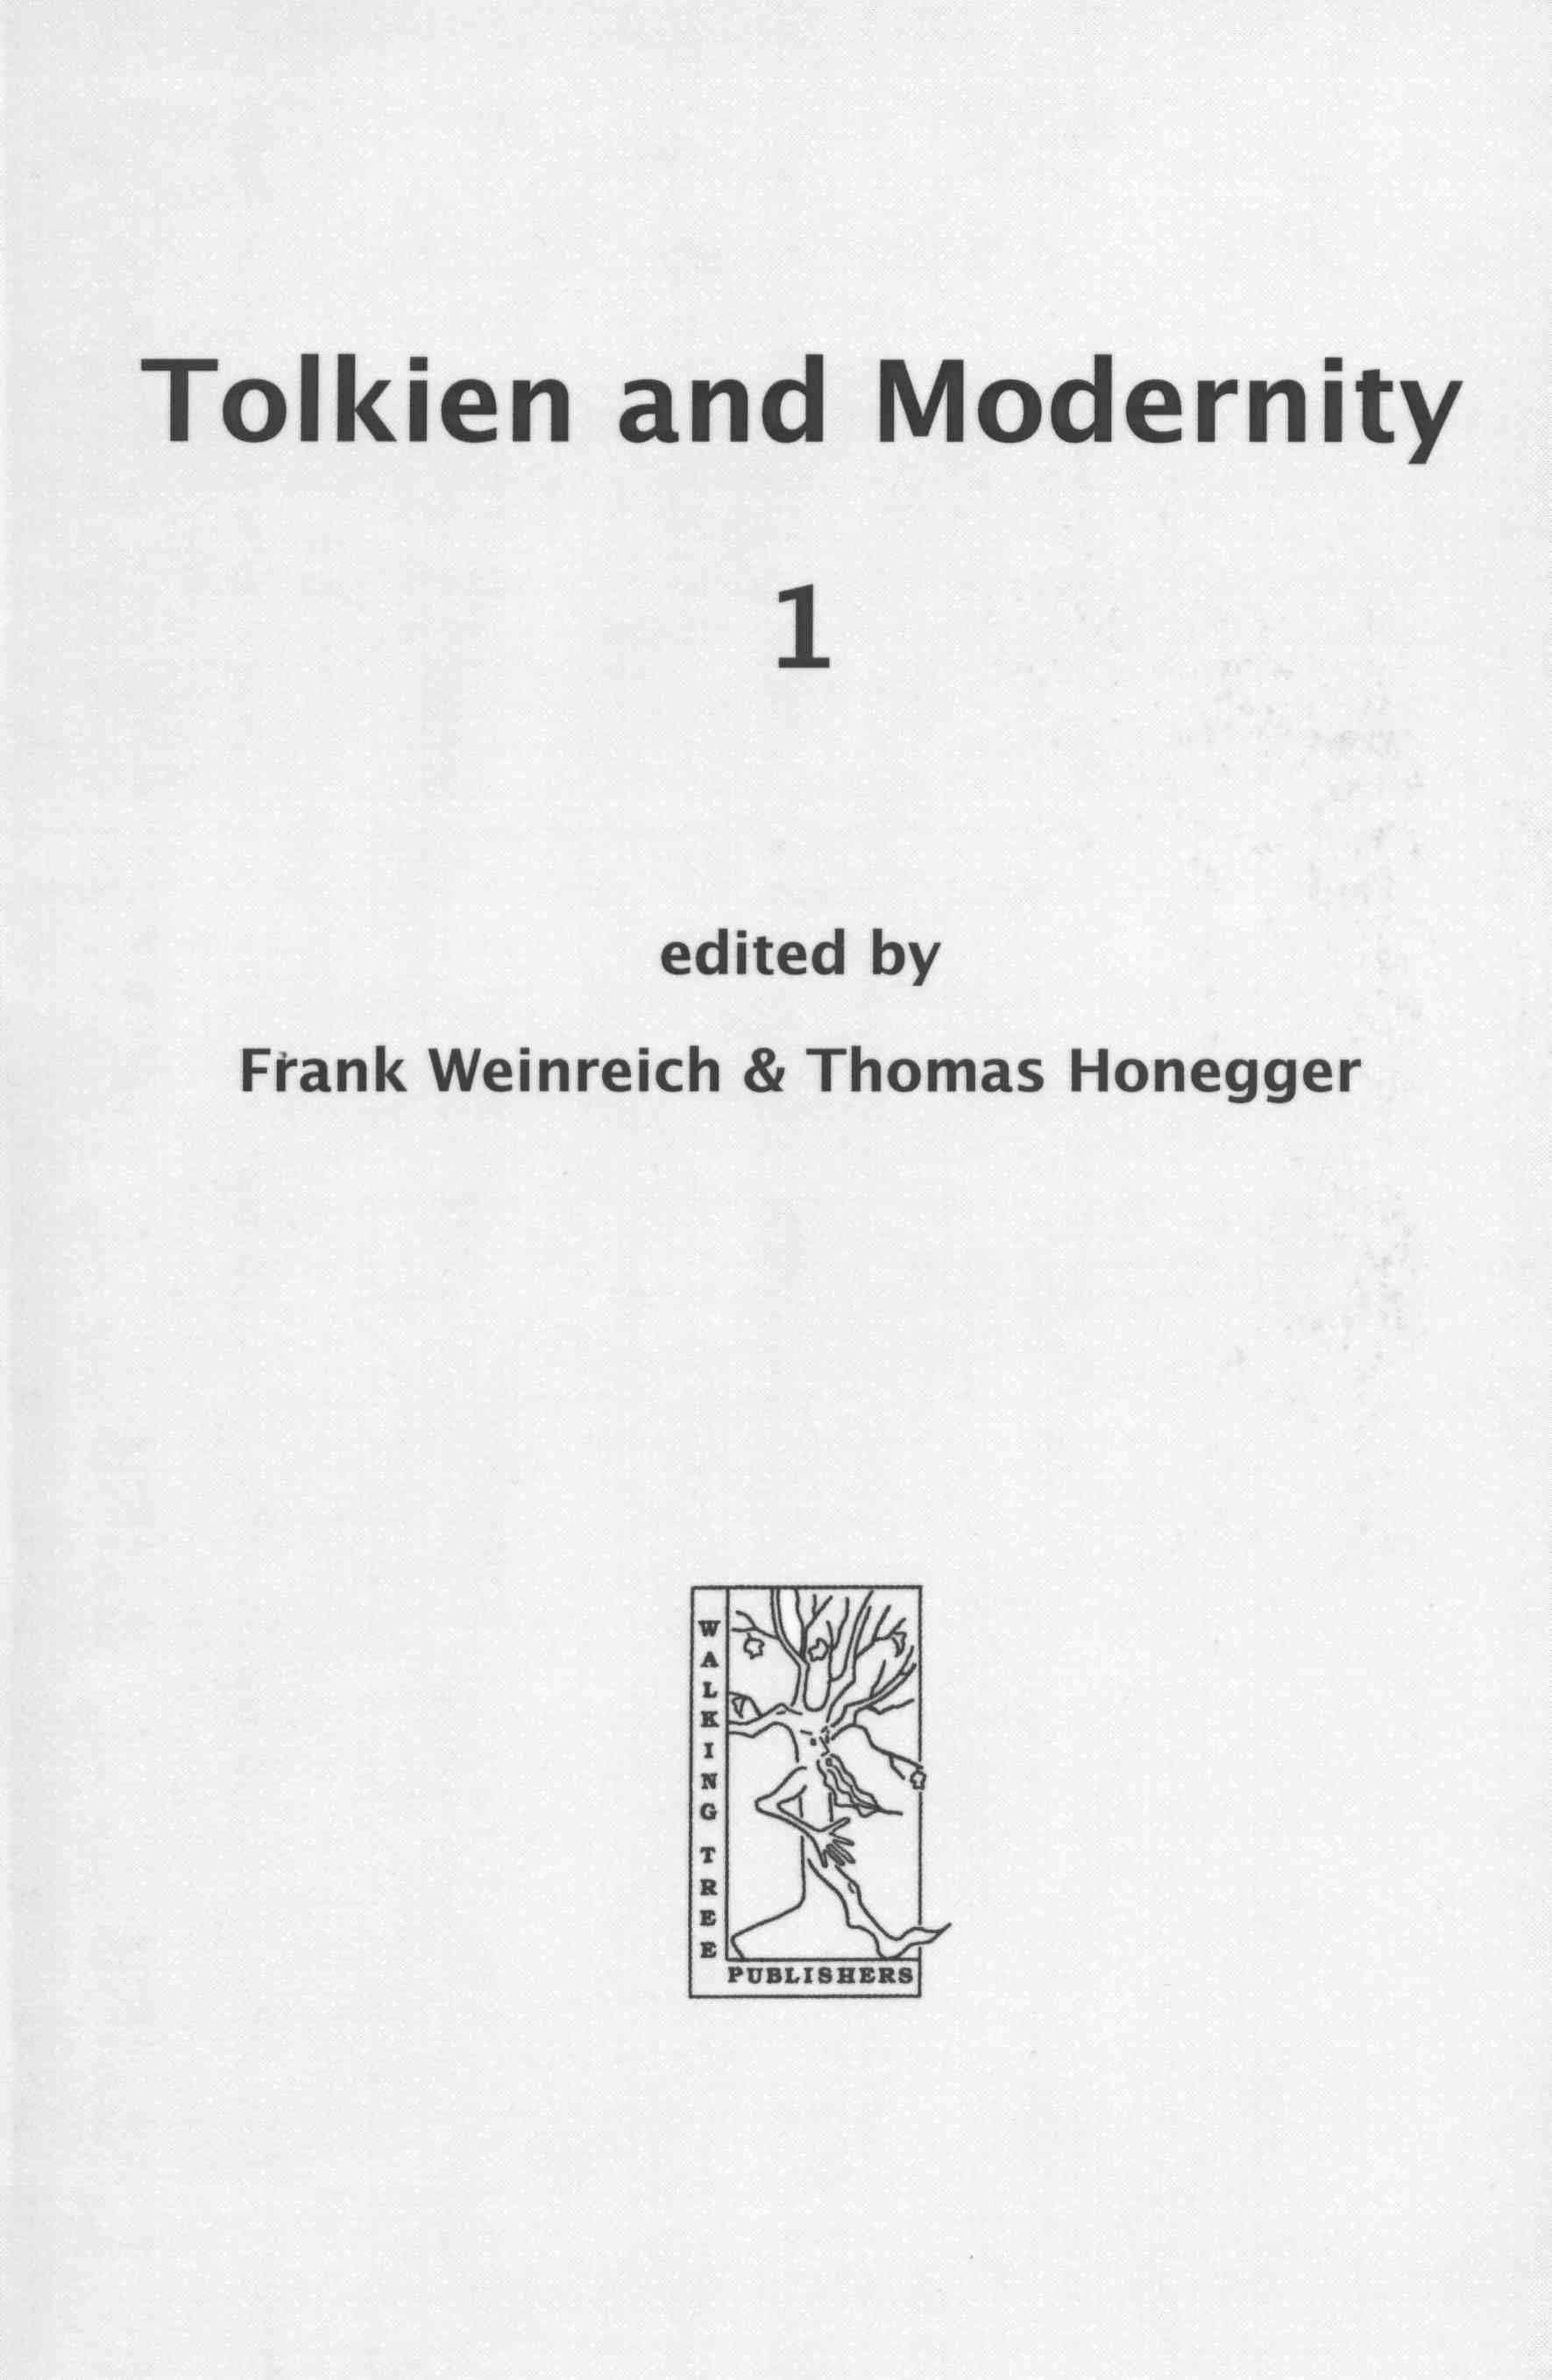 Tolkien and Modernity 1 (Cormarë Series #9)